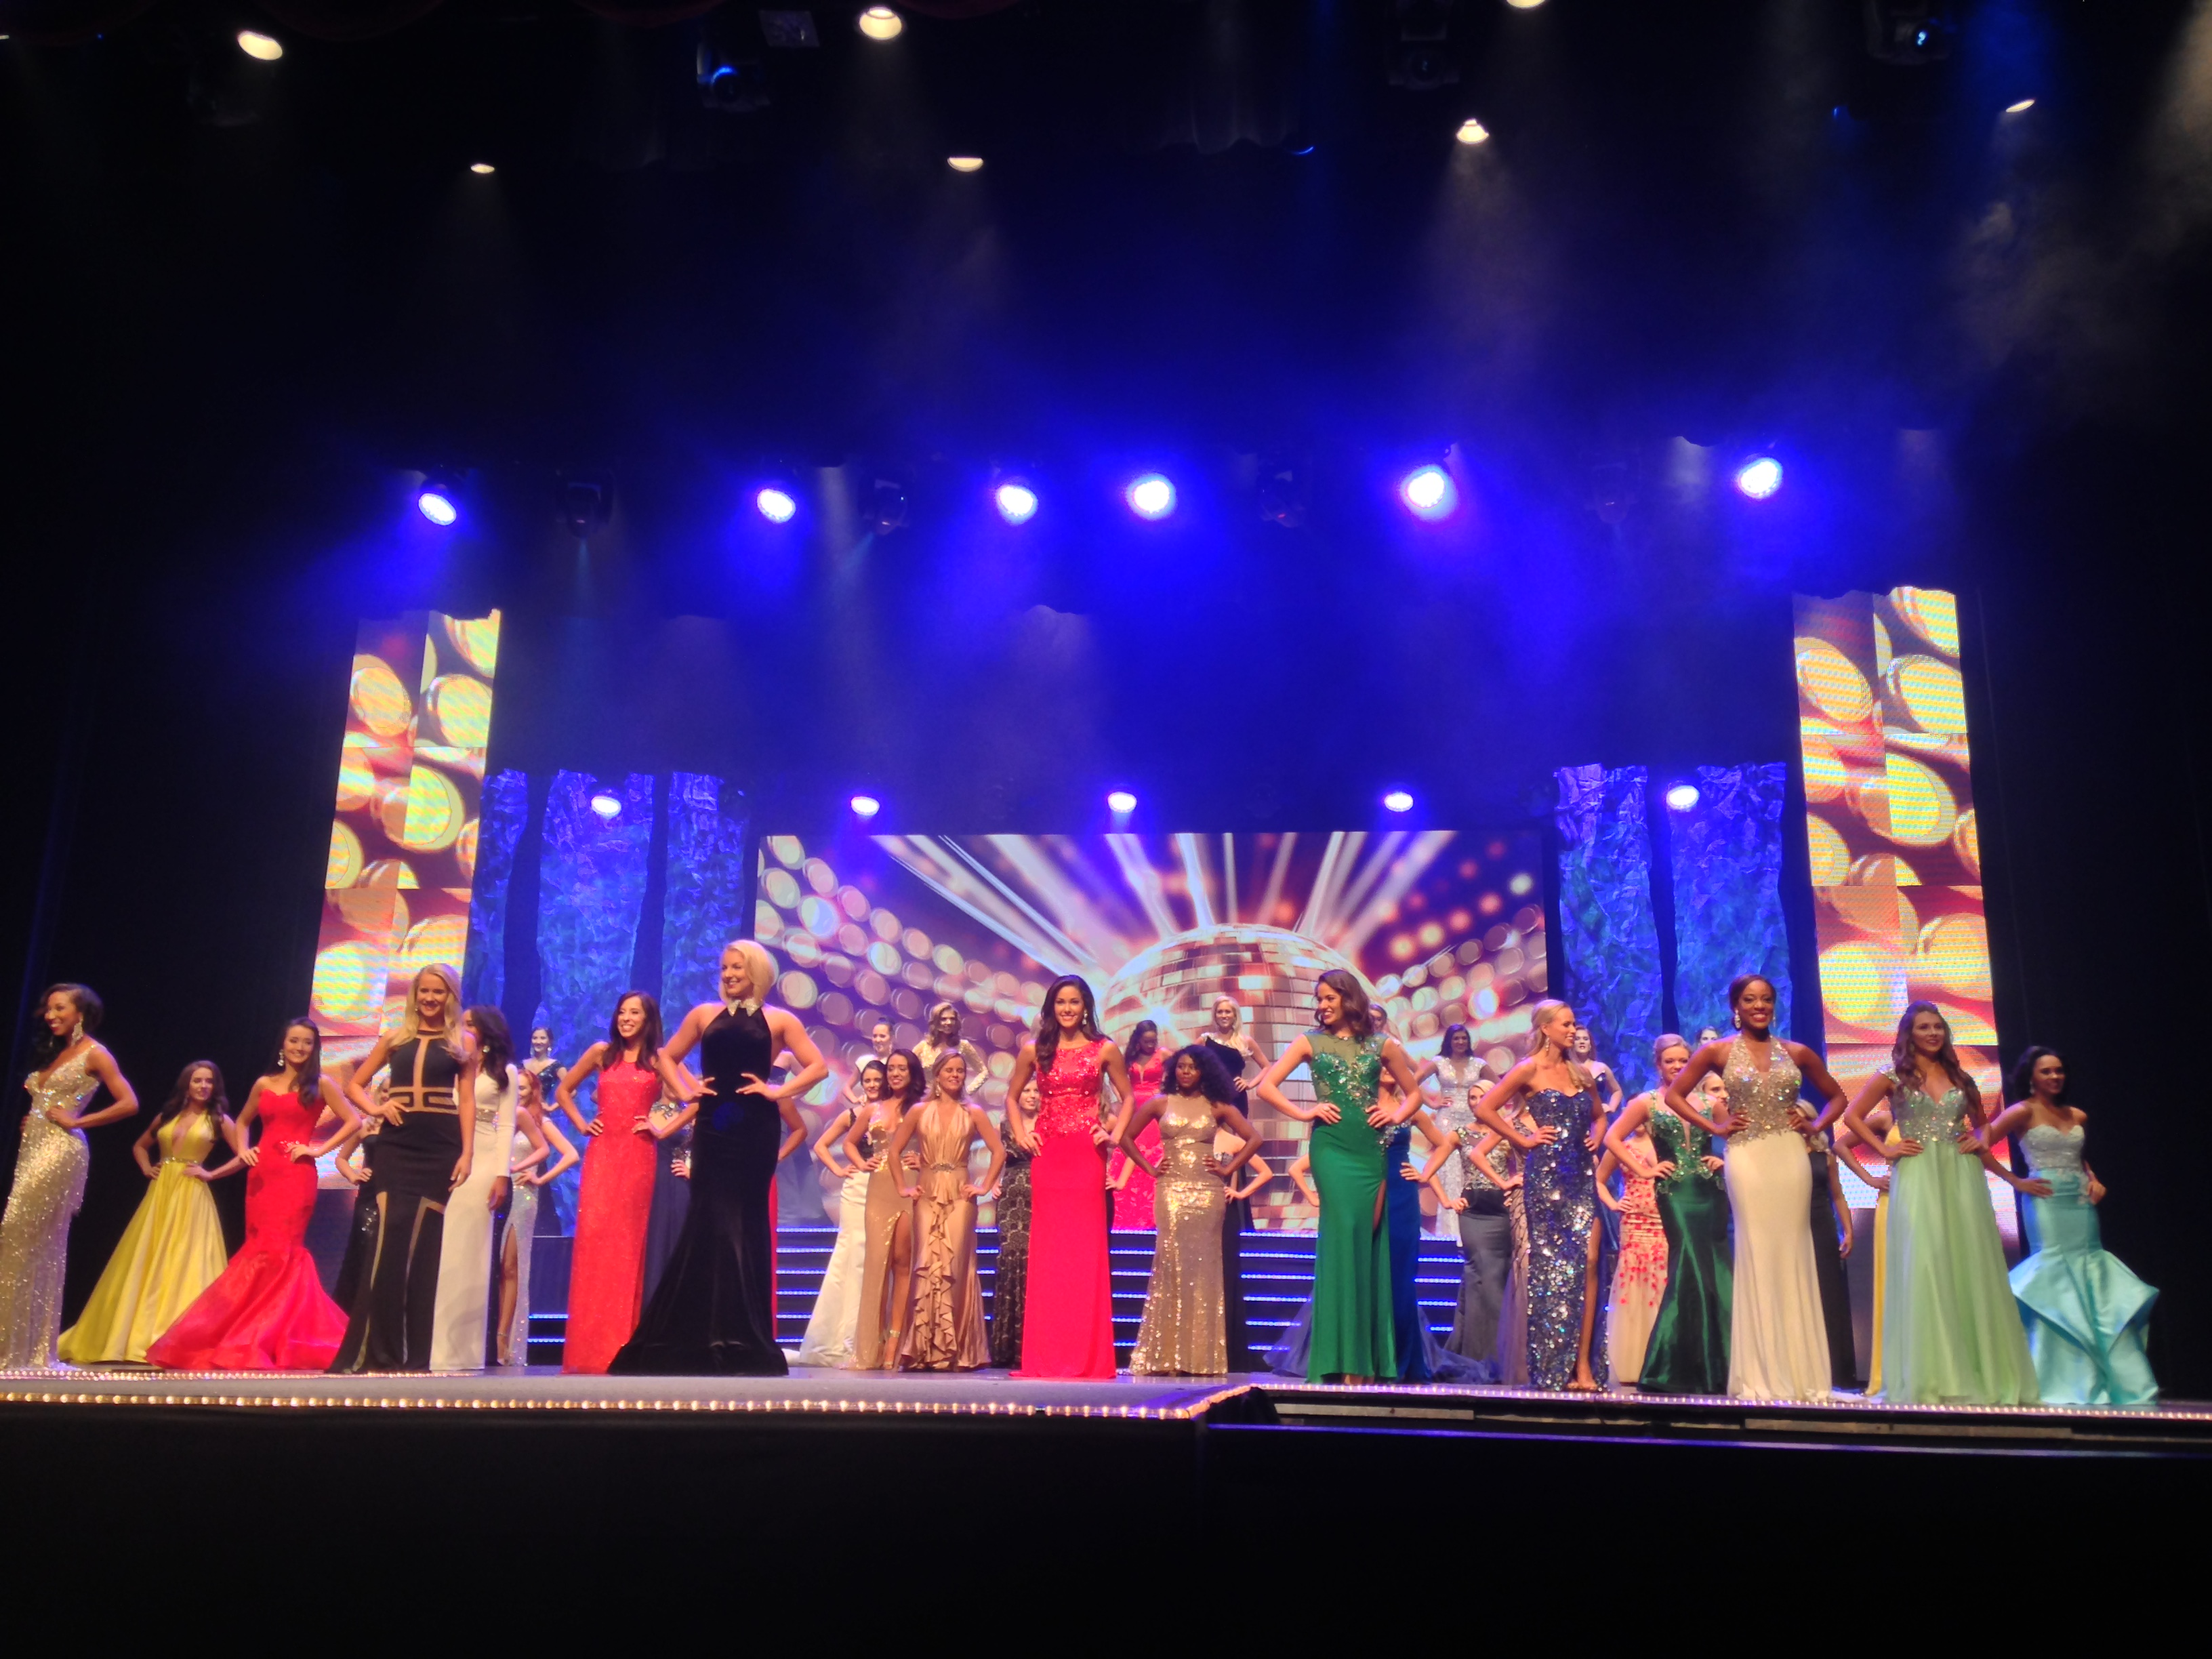 Contestants at the Miss Florida contest